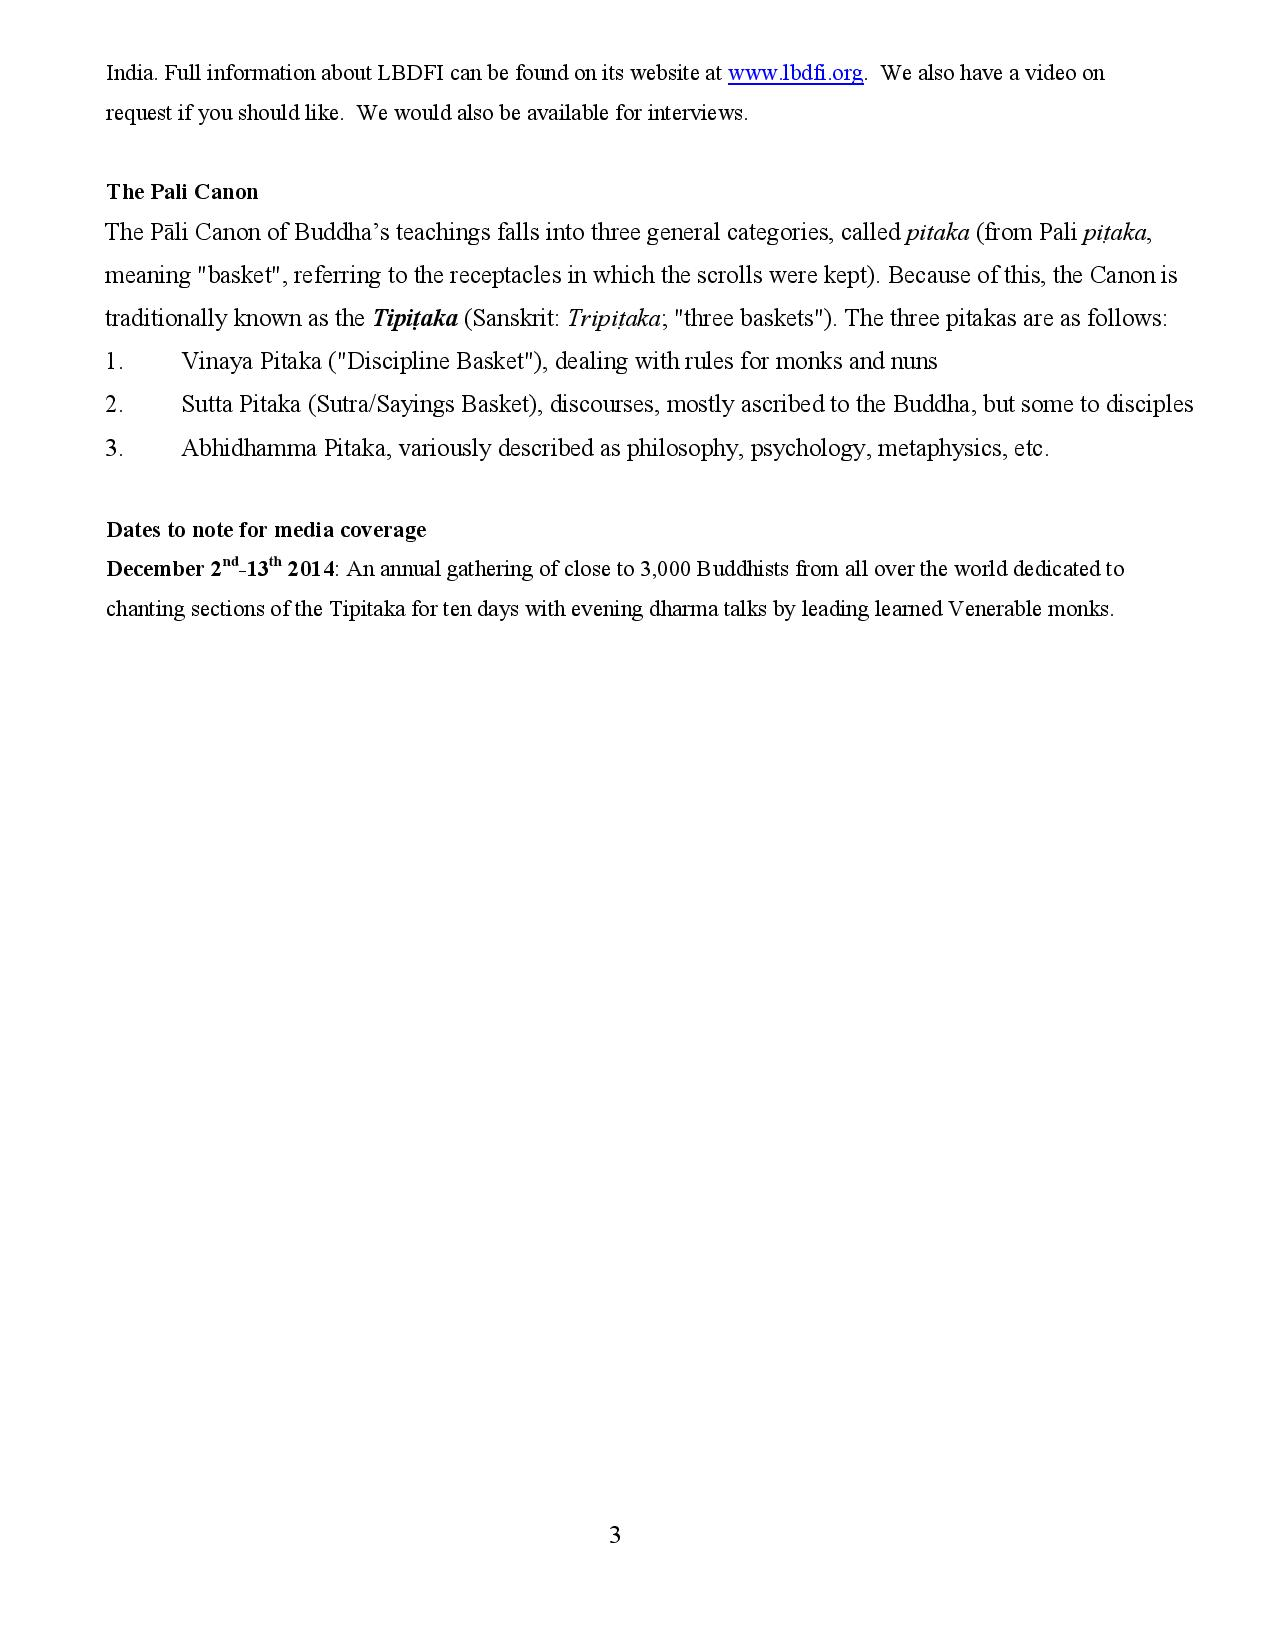 Revival of Chanting Tradition 2014 -page-003